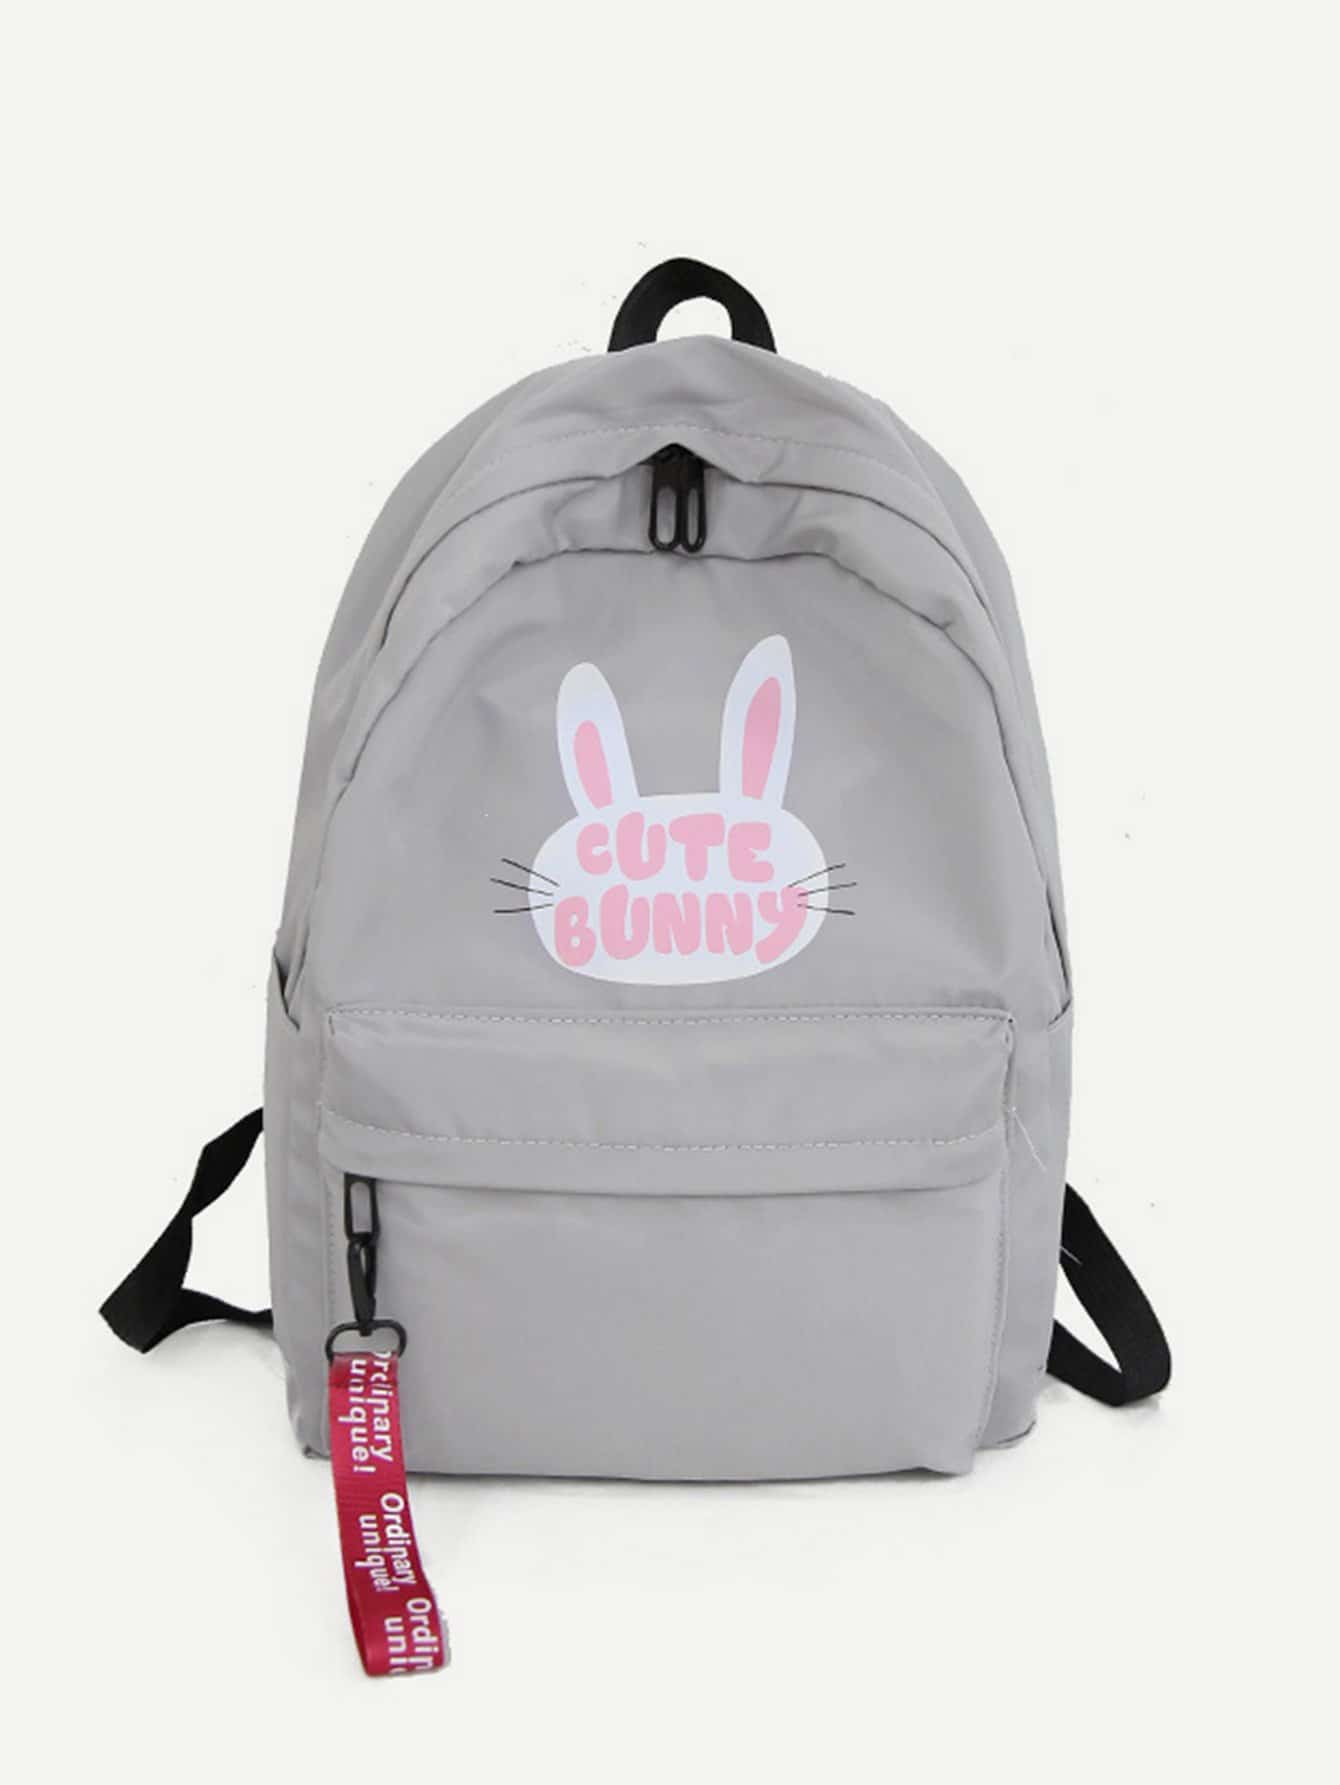 cat 2151 Pocket Backpack 548470 html Rabbit Print Front p N0nZw8OPkX